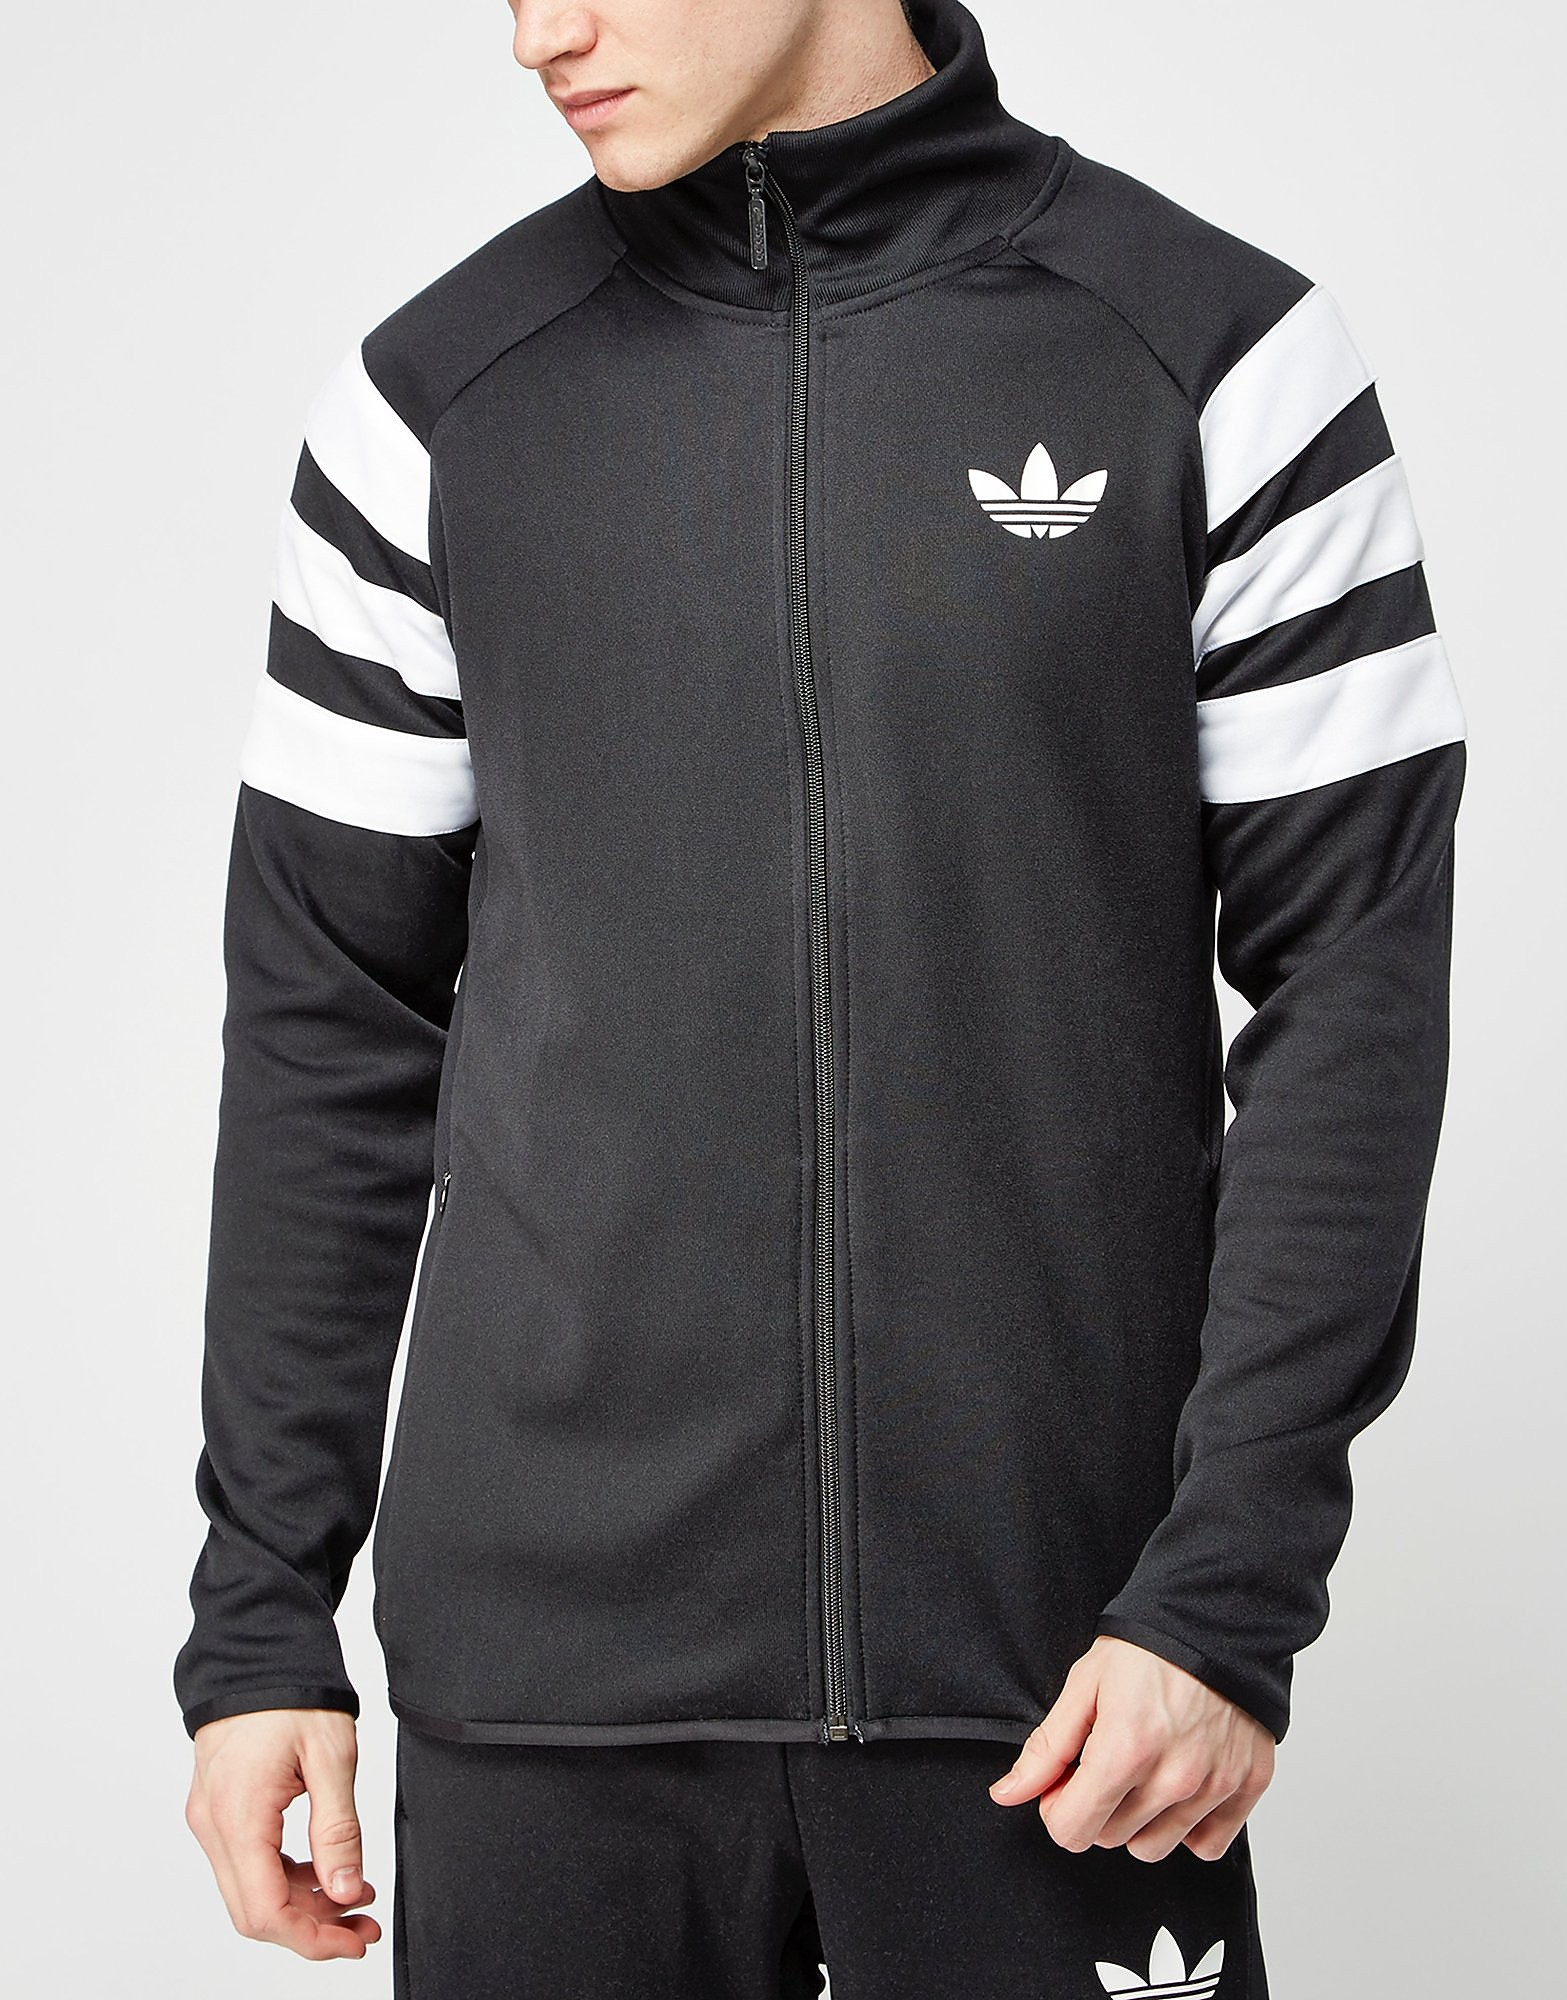 adidas Originals Trefoil Football Club Track Top